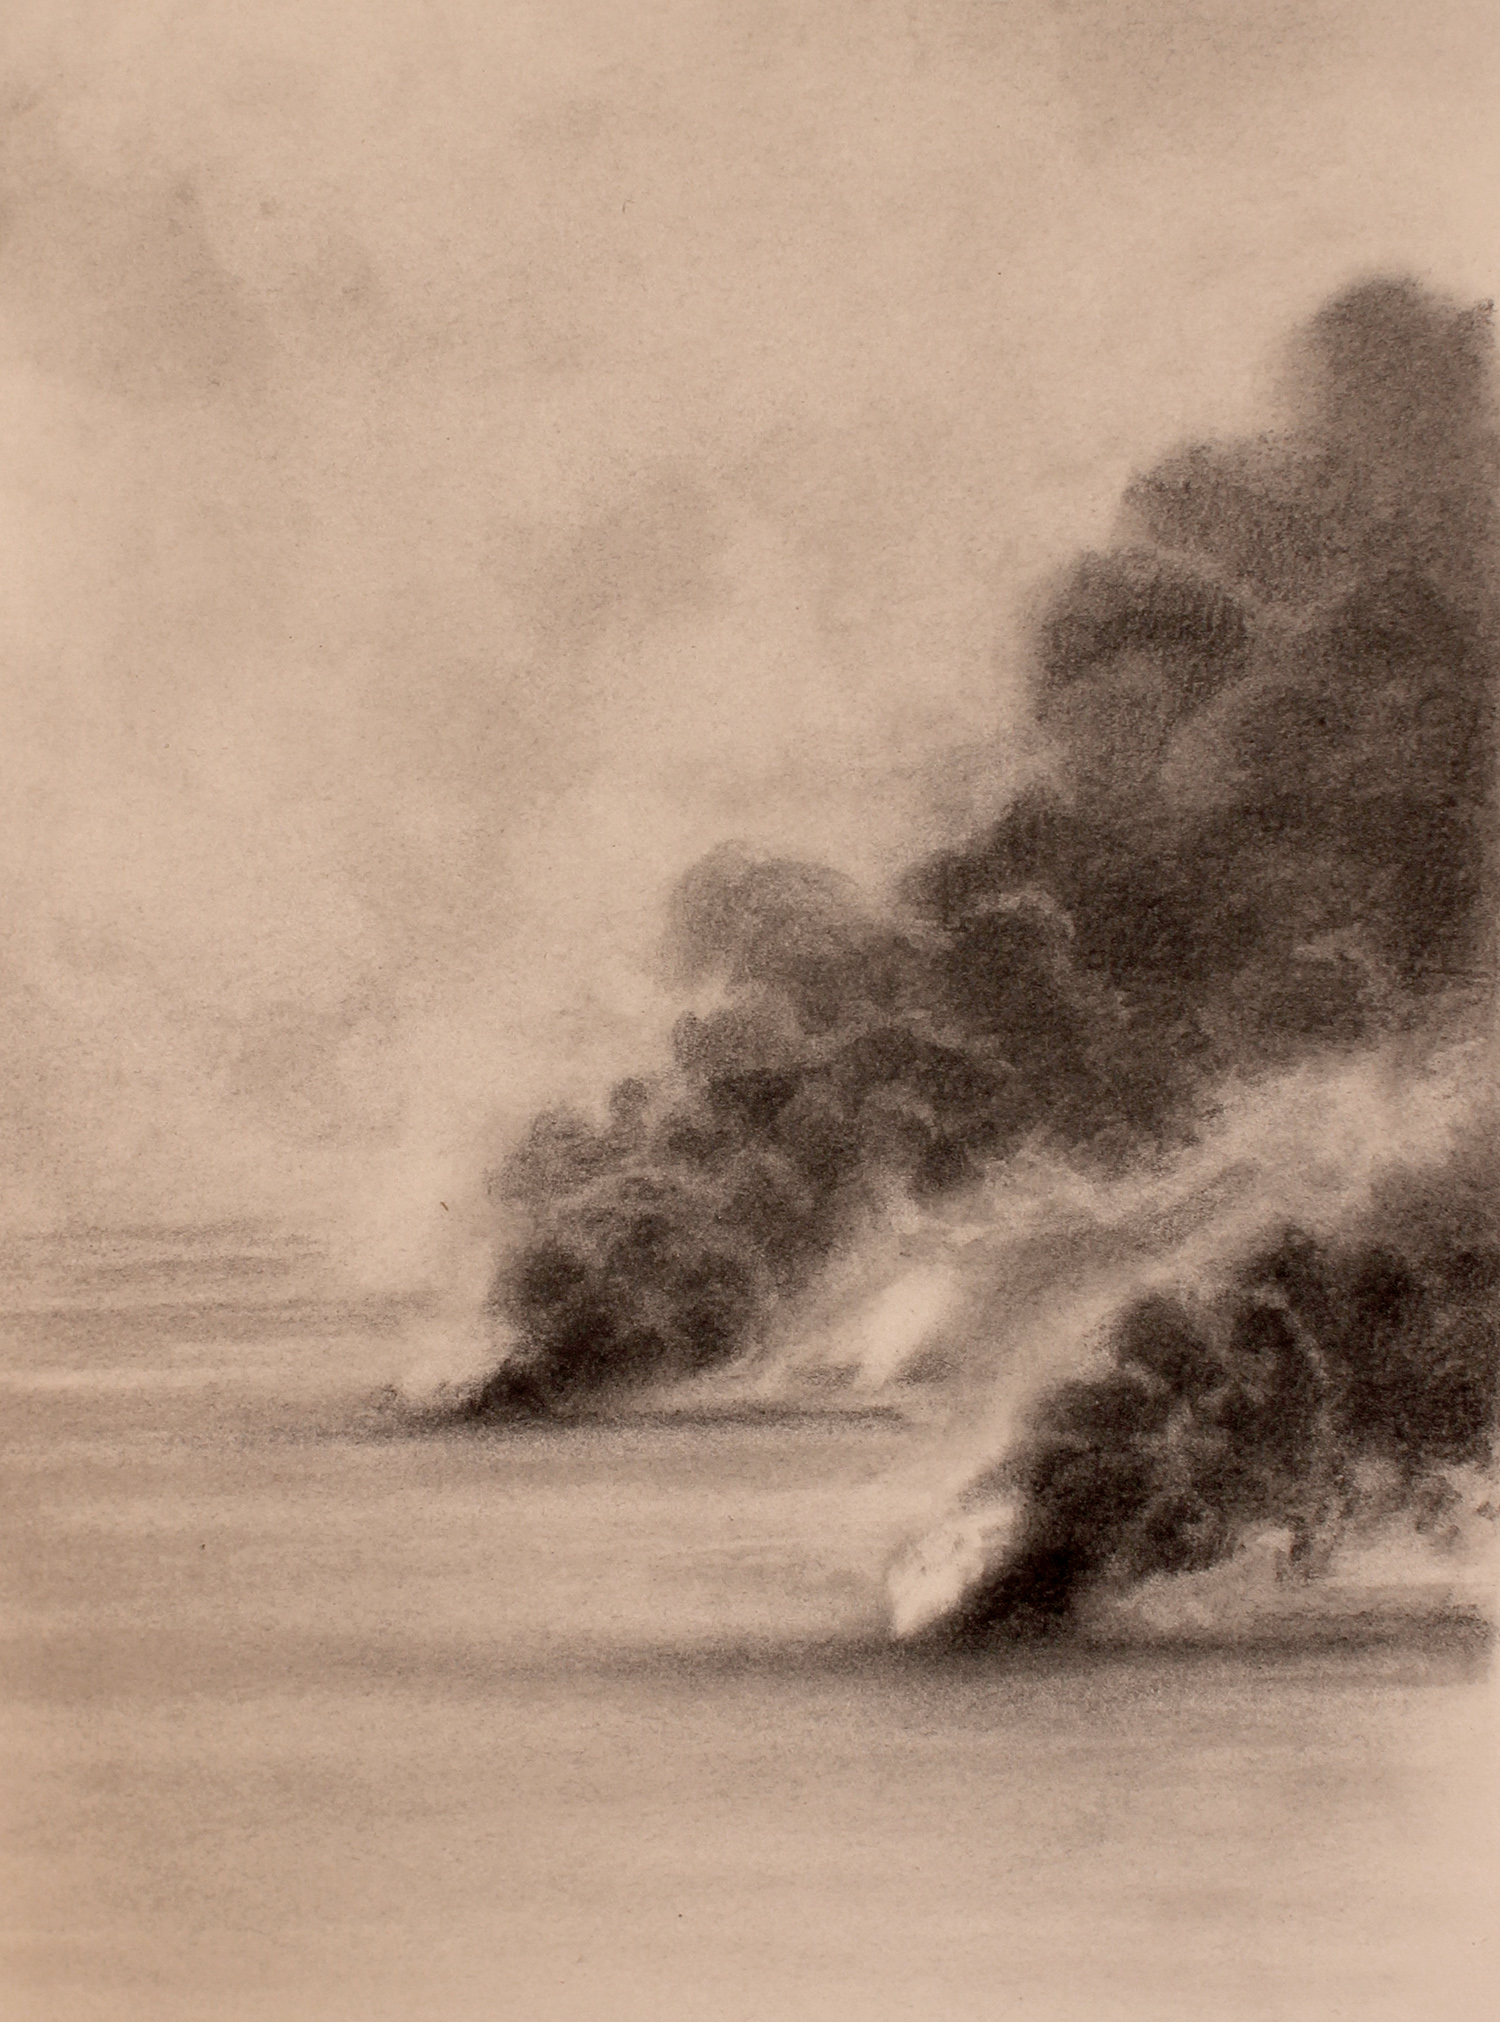 desert (iraq) 2, 2017, 10 x 15 inches, graphite on paper